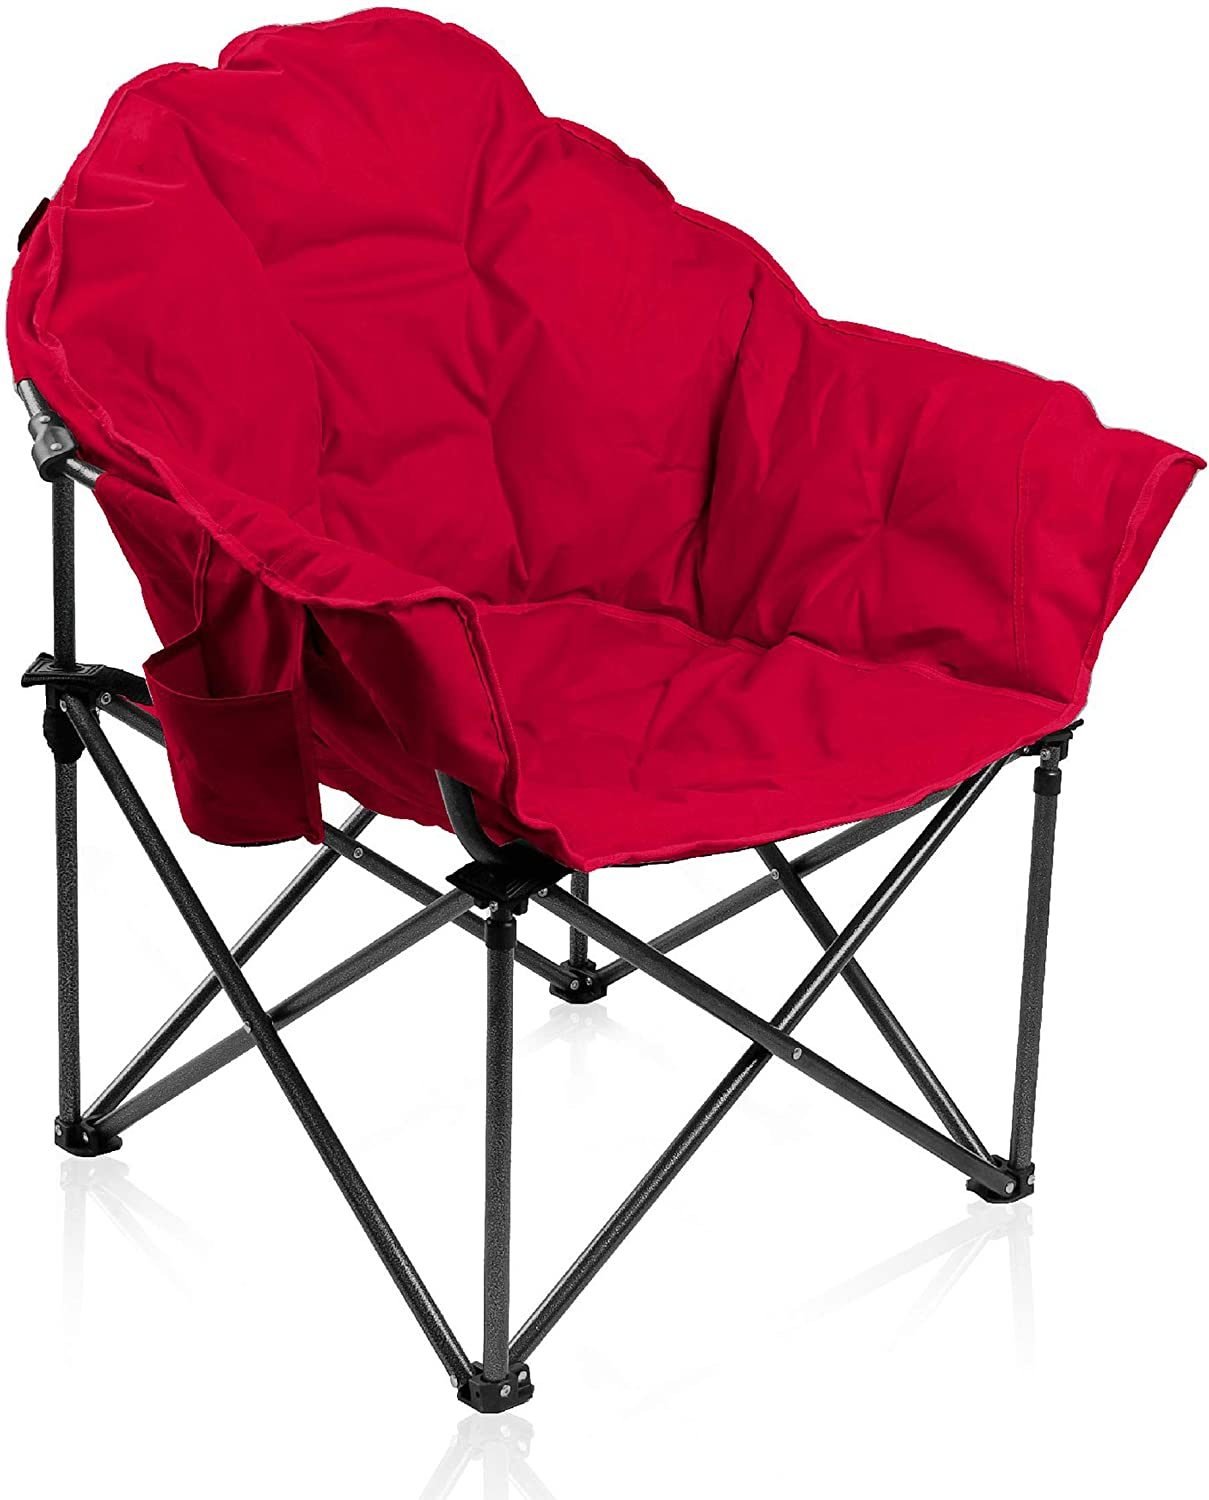 ALPHA CAMP Oversized Round Moon Chair